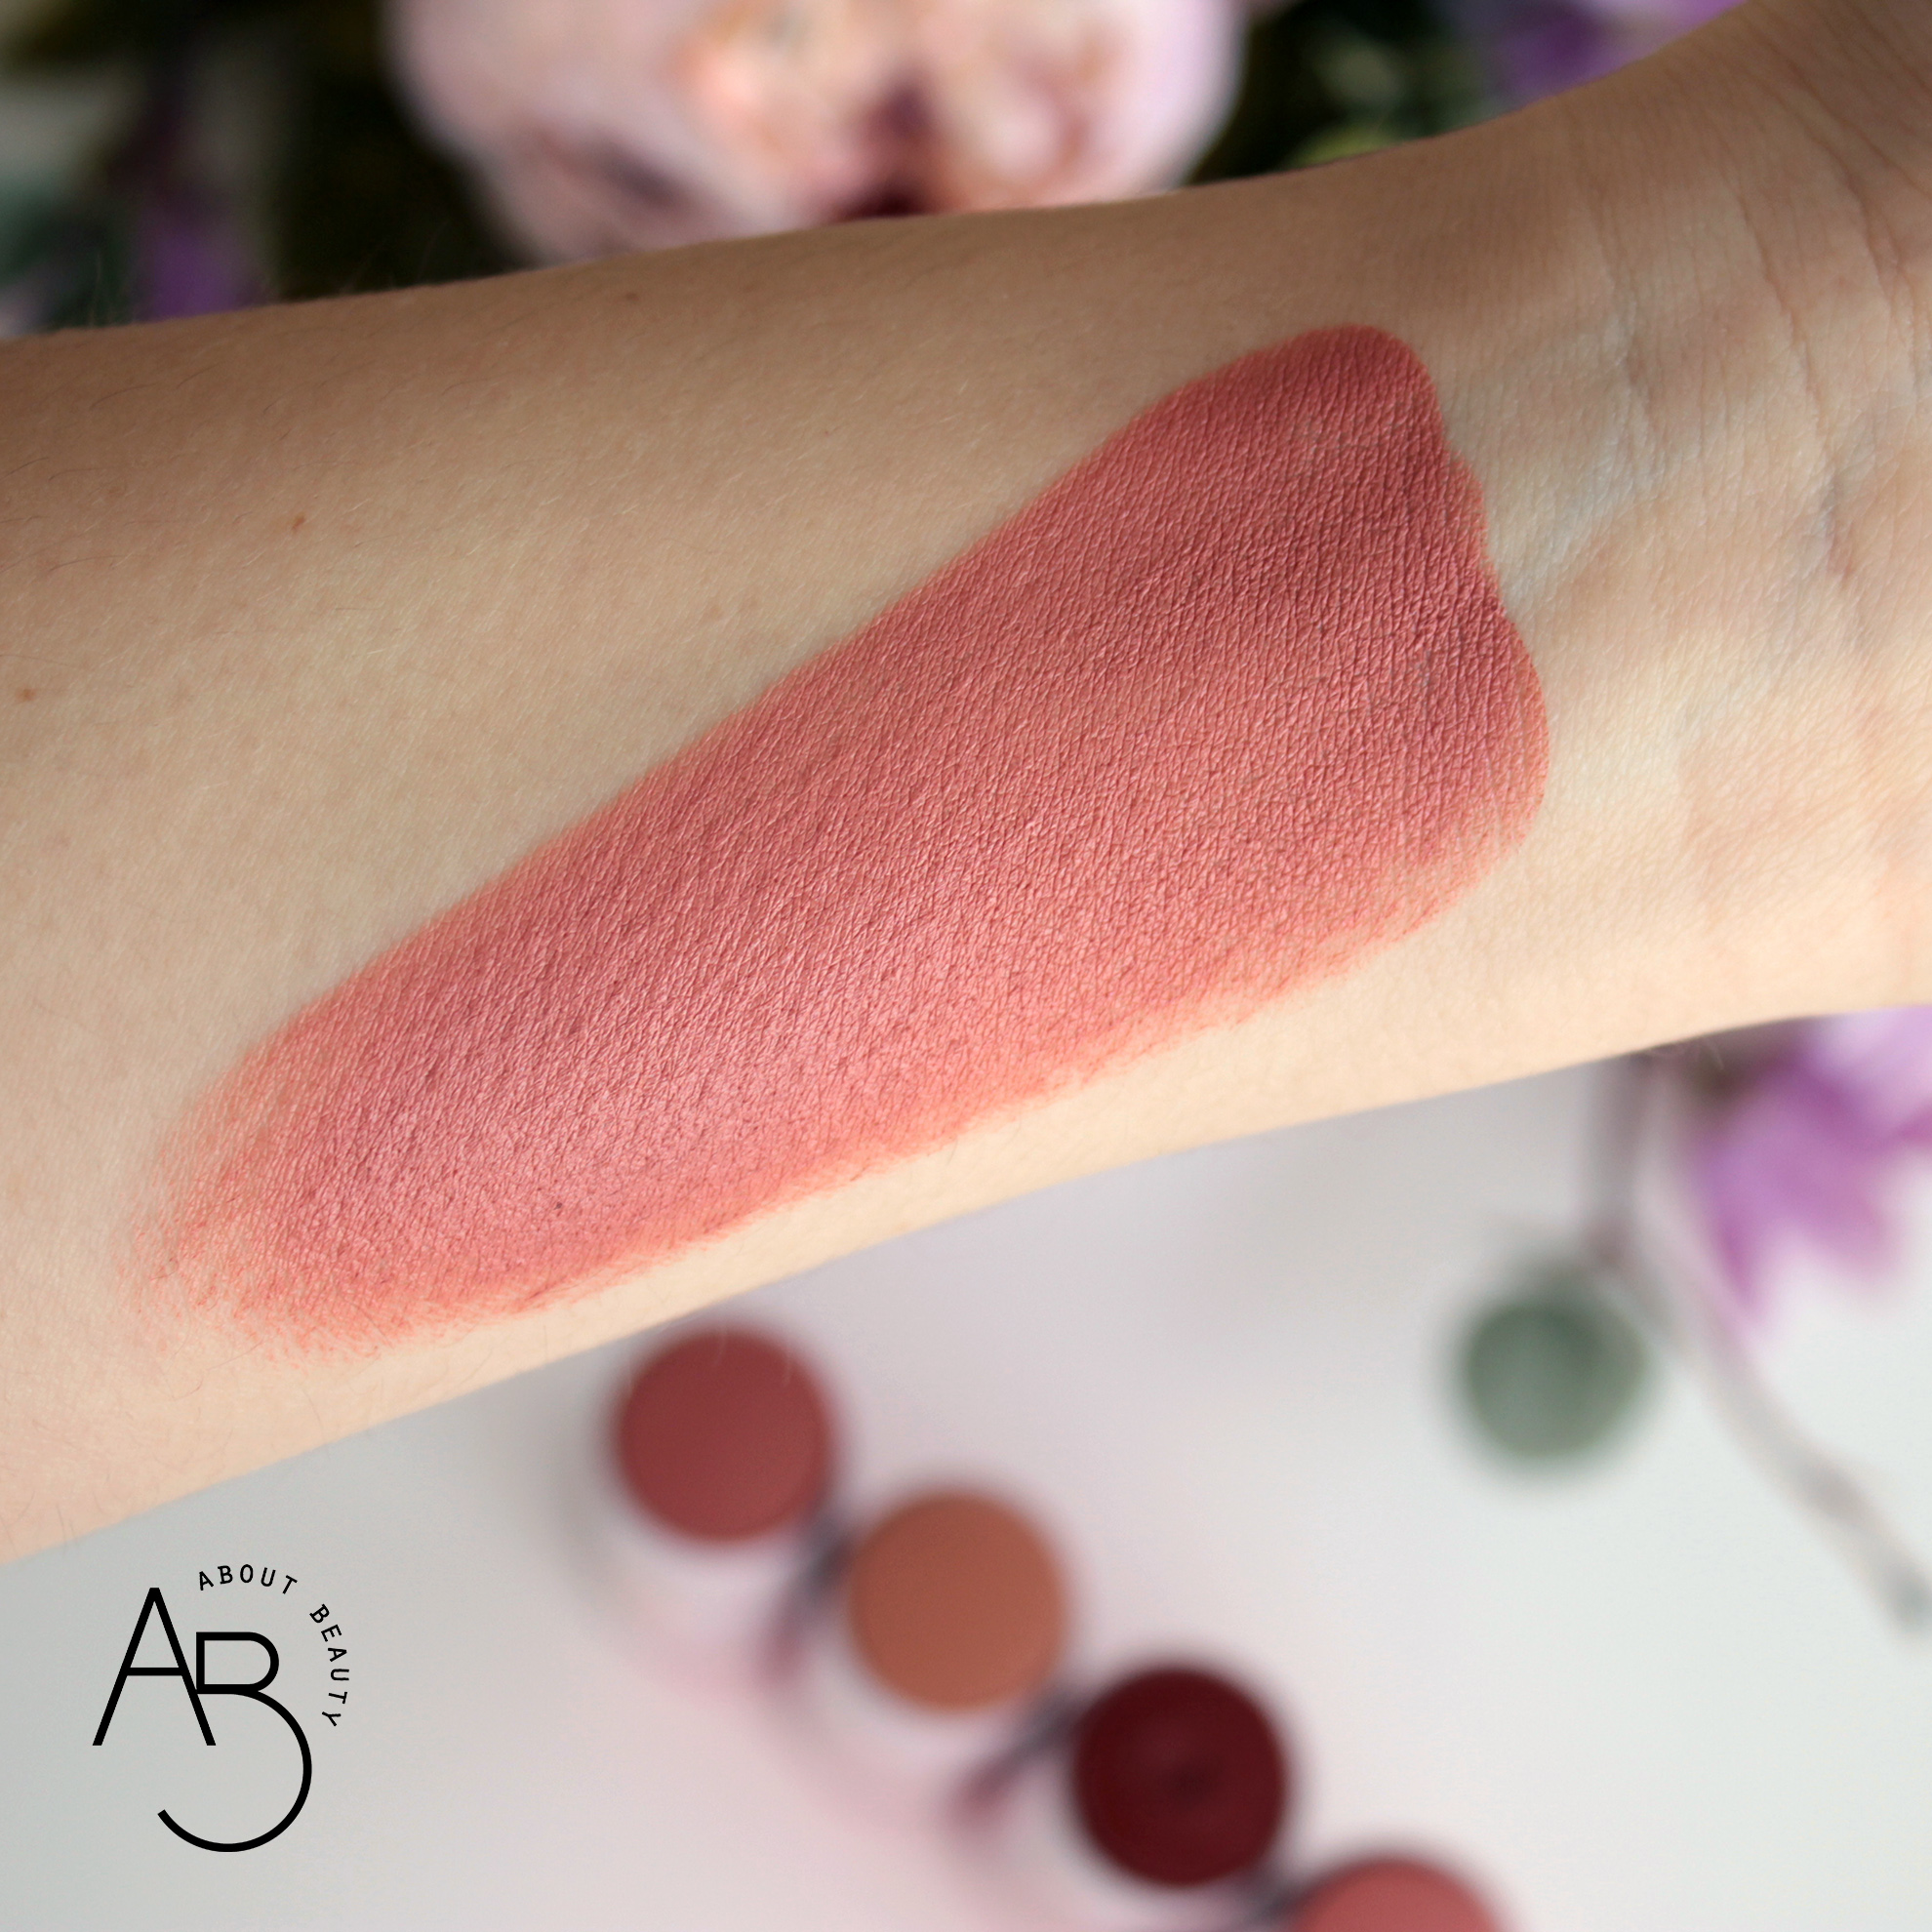 Neve Cosmetics Star System Special Effects Blush - Recensione swatch info review codice sconto - Strobeberry swatch - About Beauty